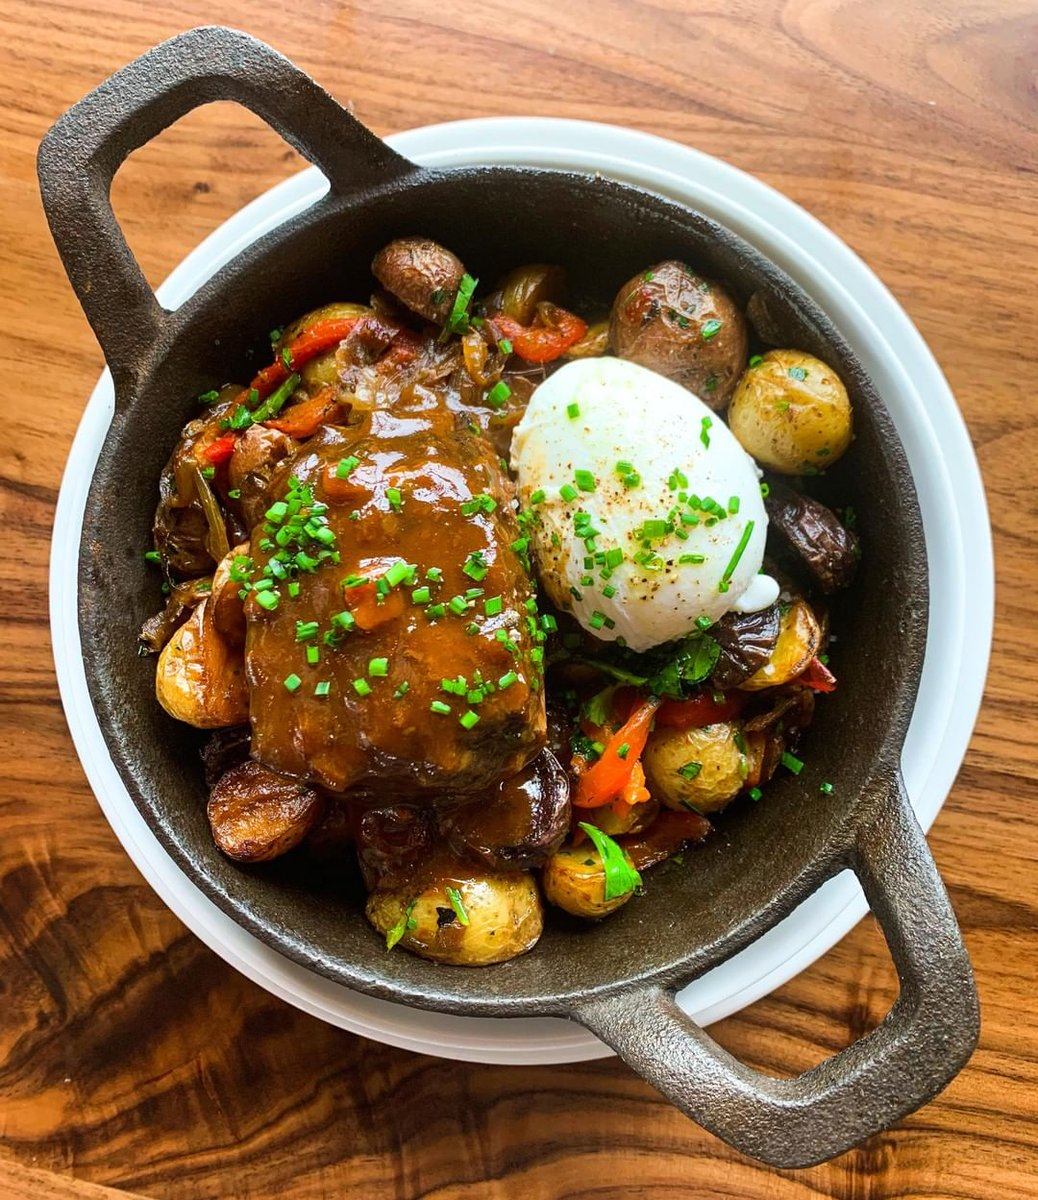 DETROIT !!  Head over to @Bar_Verona in Washington Township and order up our AMAZING Short Rib Hash & Eggs!  . #DetroitFoodies #BarVerona #WashingtonTownship #WeekendBrunch <br>http://pic.twitter.com/U1vxid6RwF